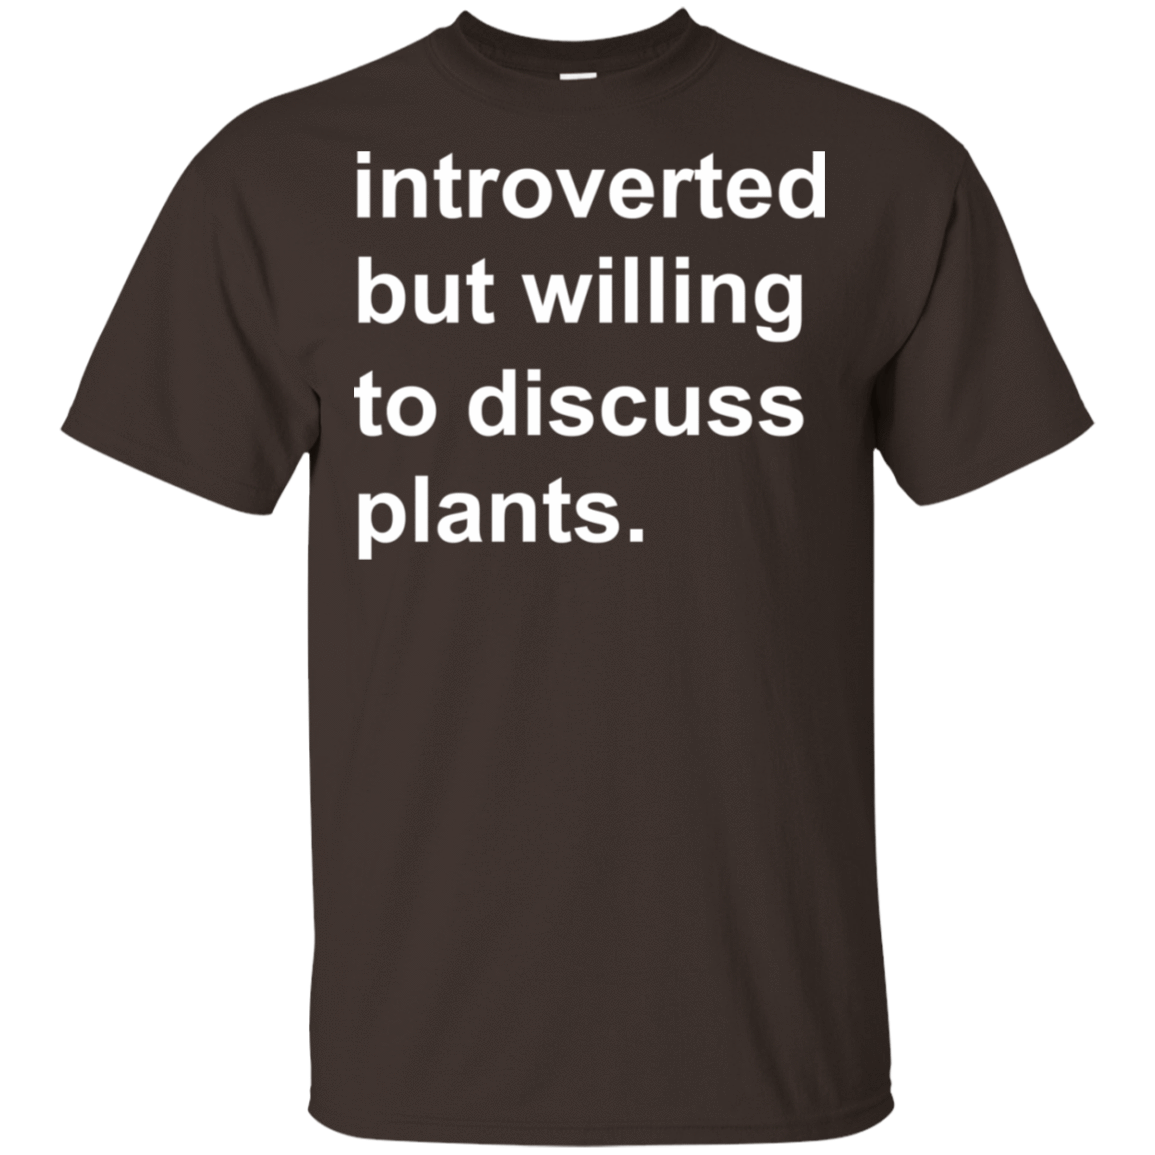 Introverted But Willing To Discuss Plants 22-2283-73889870-12087 - Tee Ript